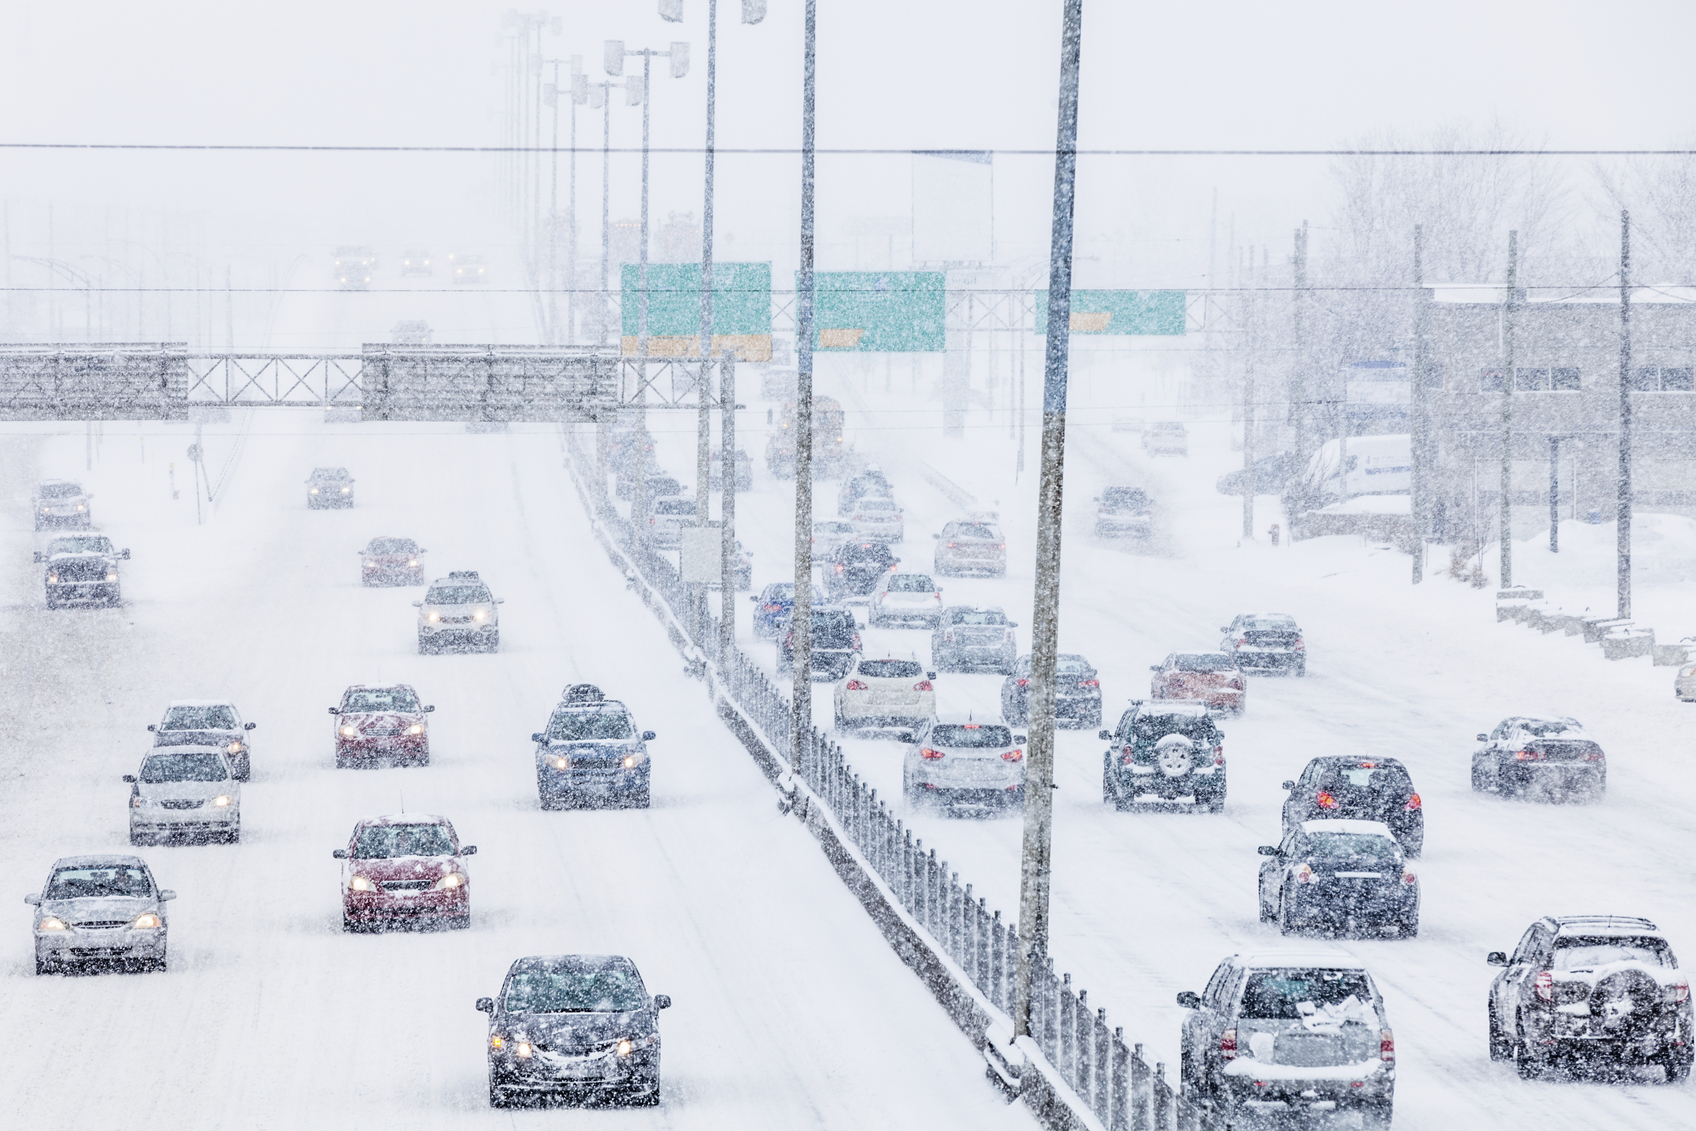 Trucking during the holidays – prepare for the winter driving conditions